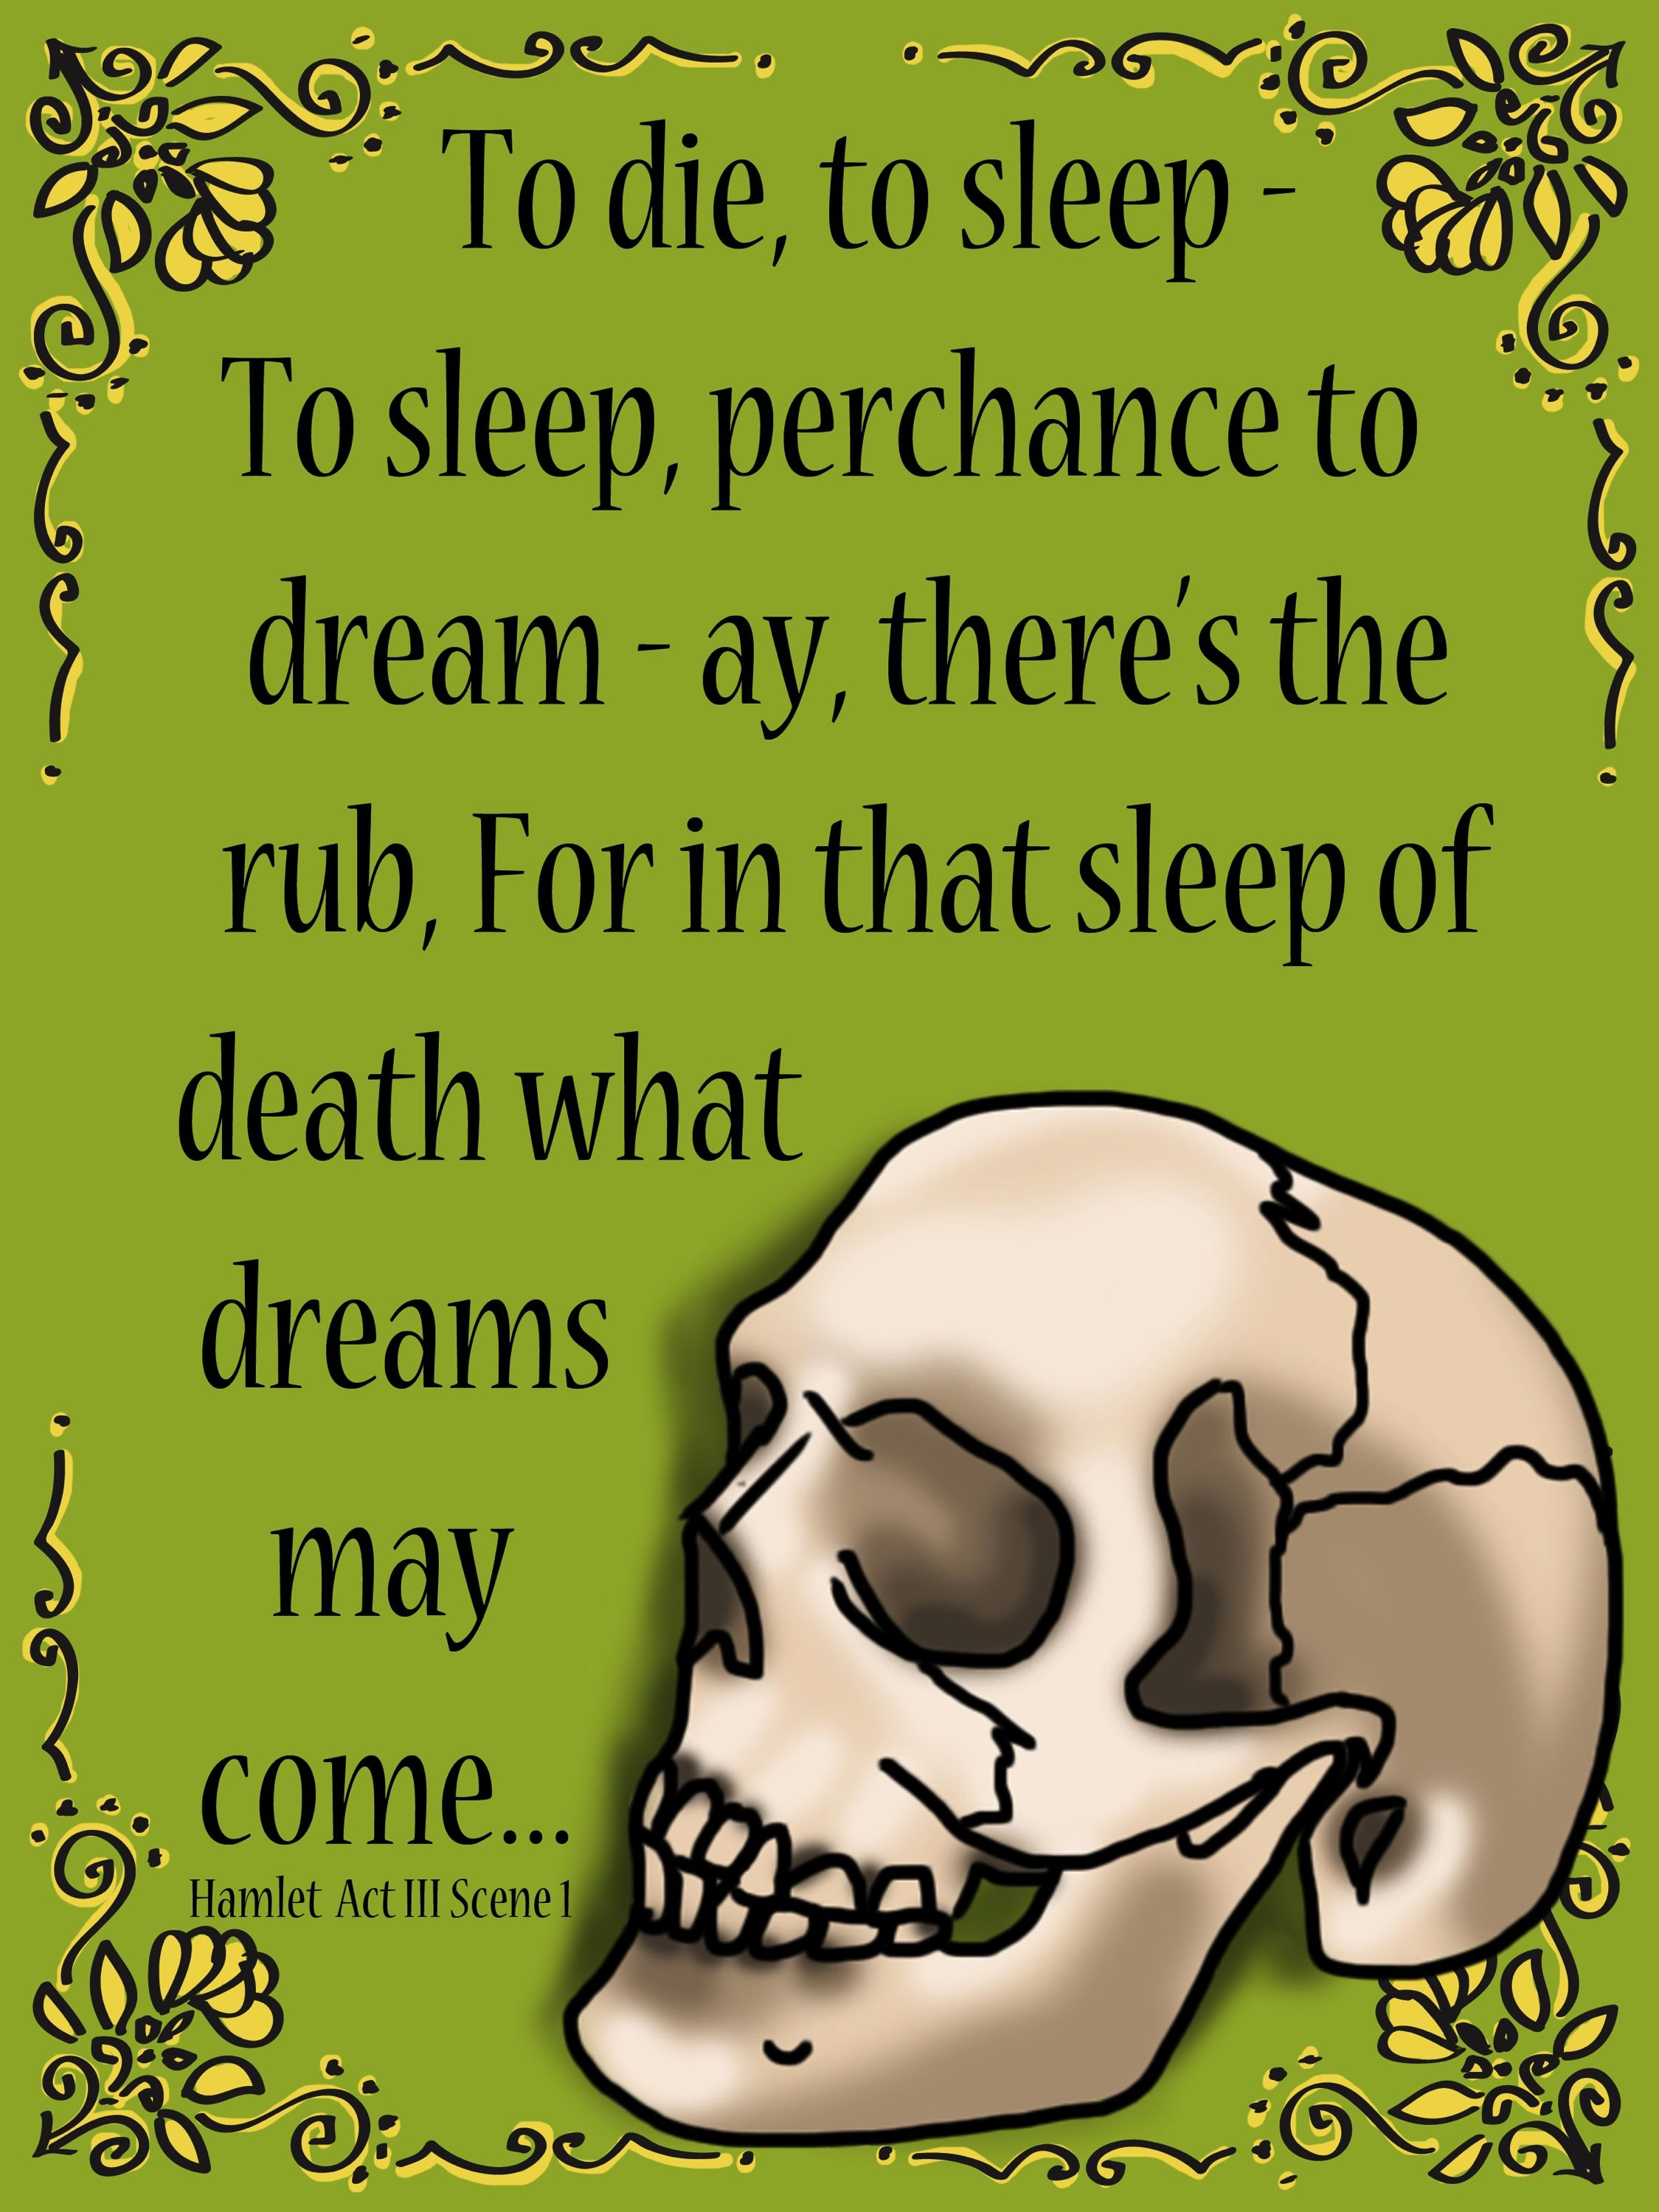 Hamlet Quotes on Pinterest | Macbeth Quotes, Shakespeare ...